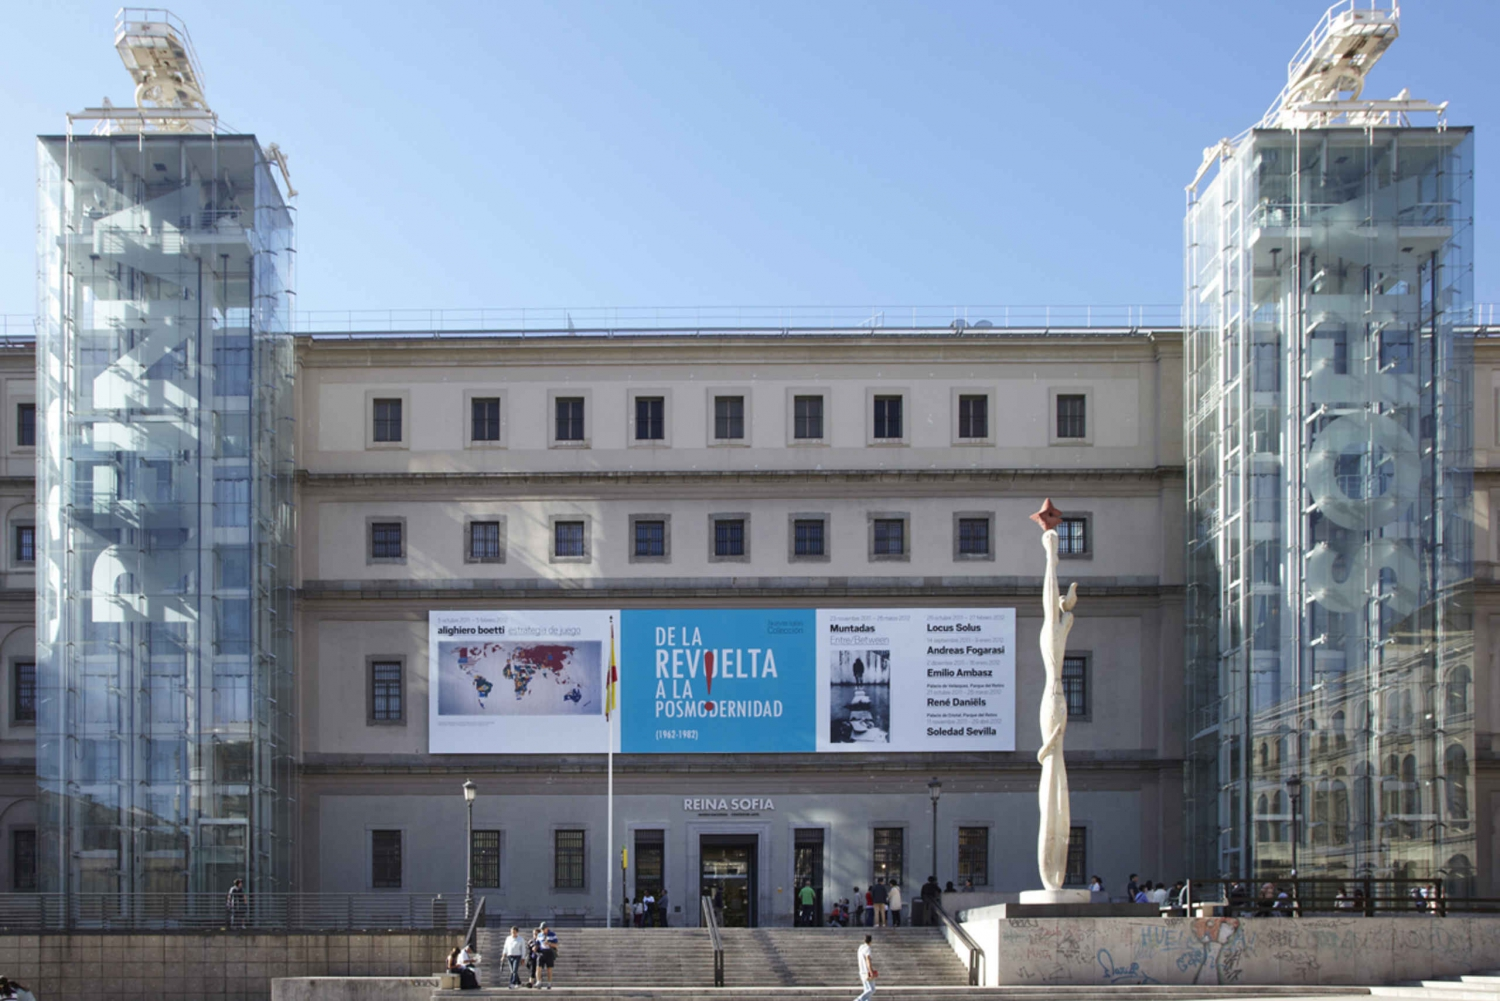 Sightseeing Tour and Reina Sofia Museum Visit